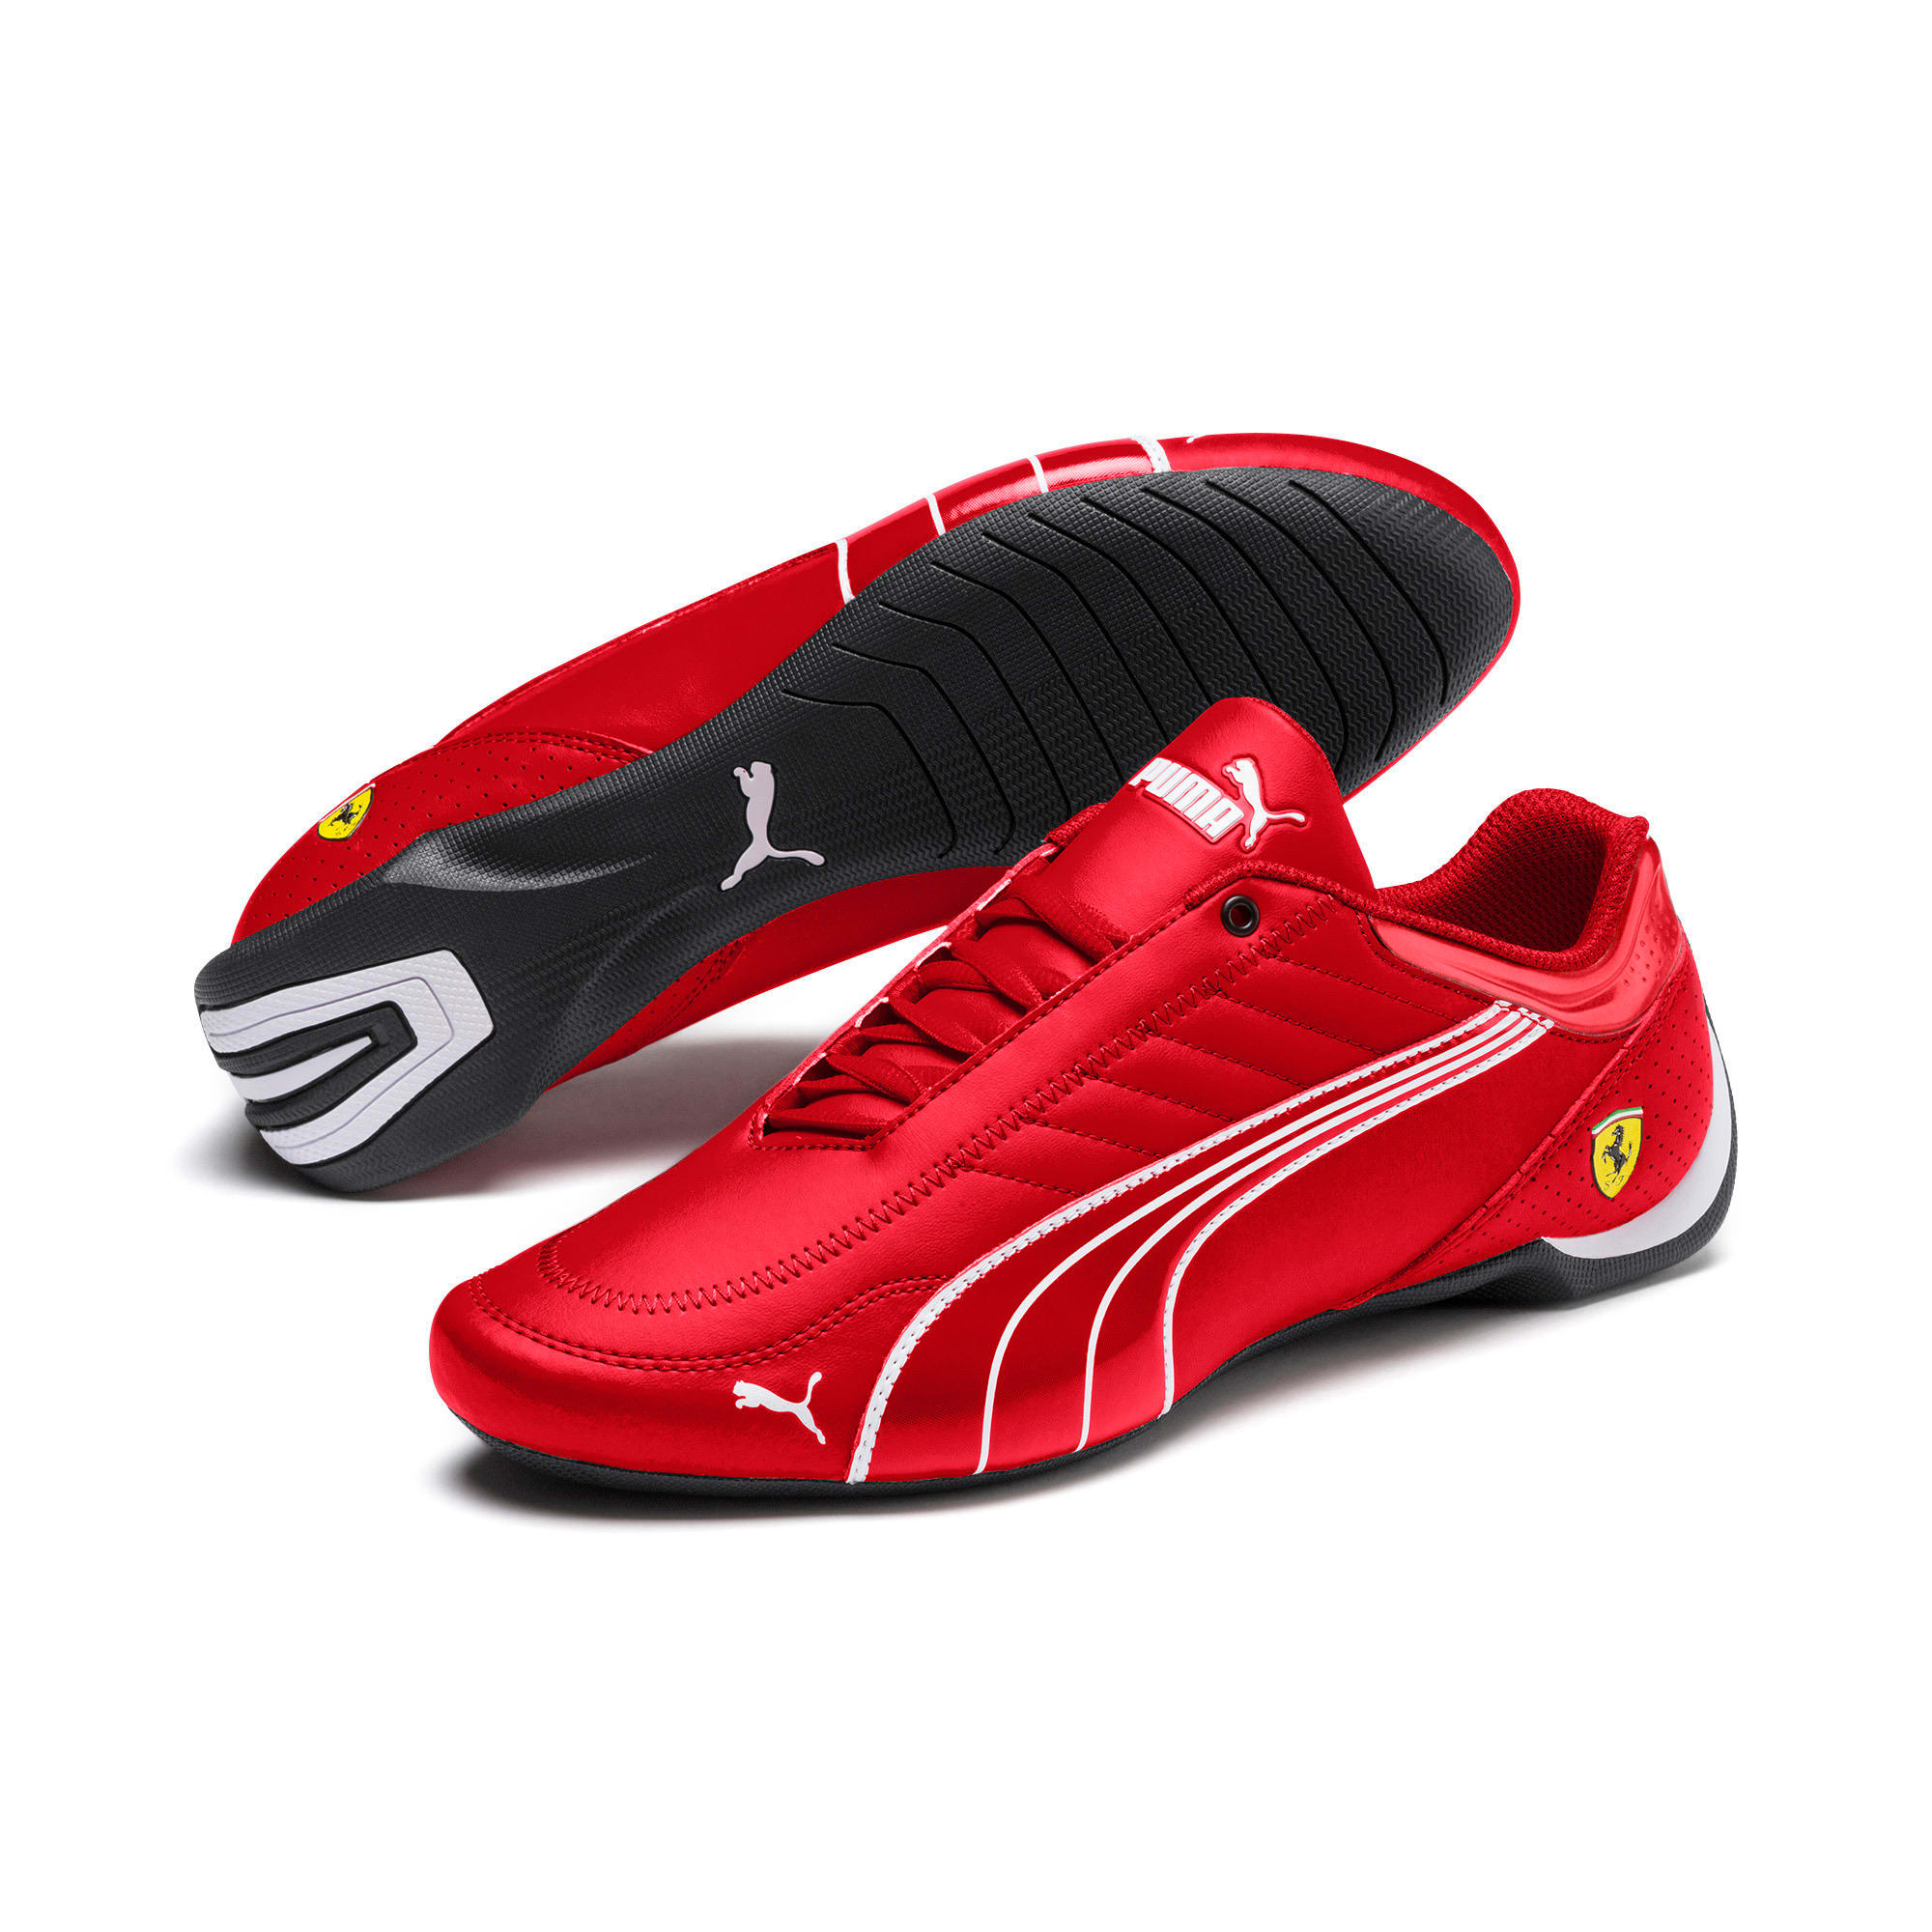 Thumbnail 3 of Ferrari Future Kart Cat Trainers, Rosso Corsa-Puma Black, medium